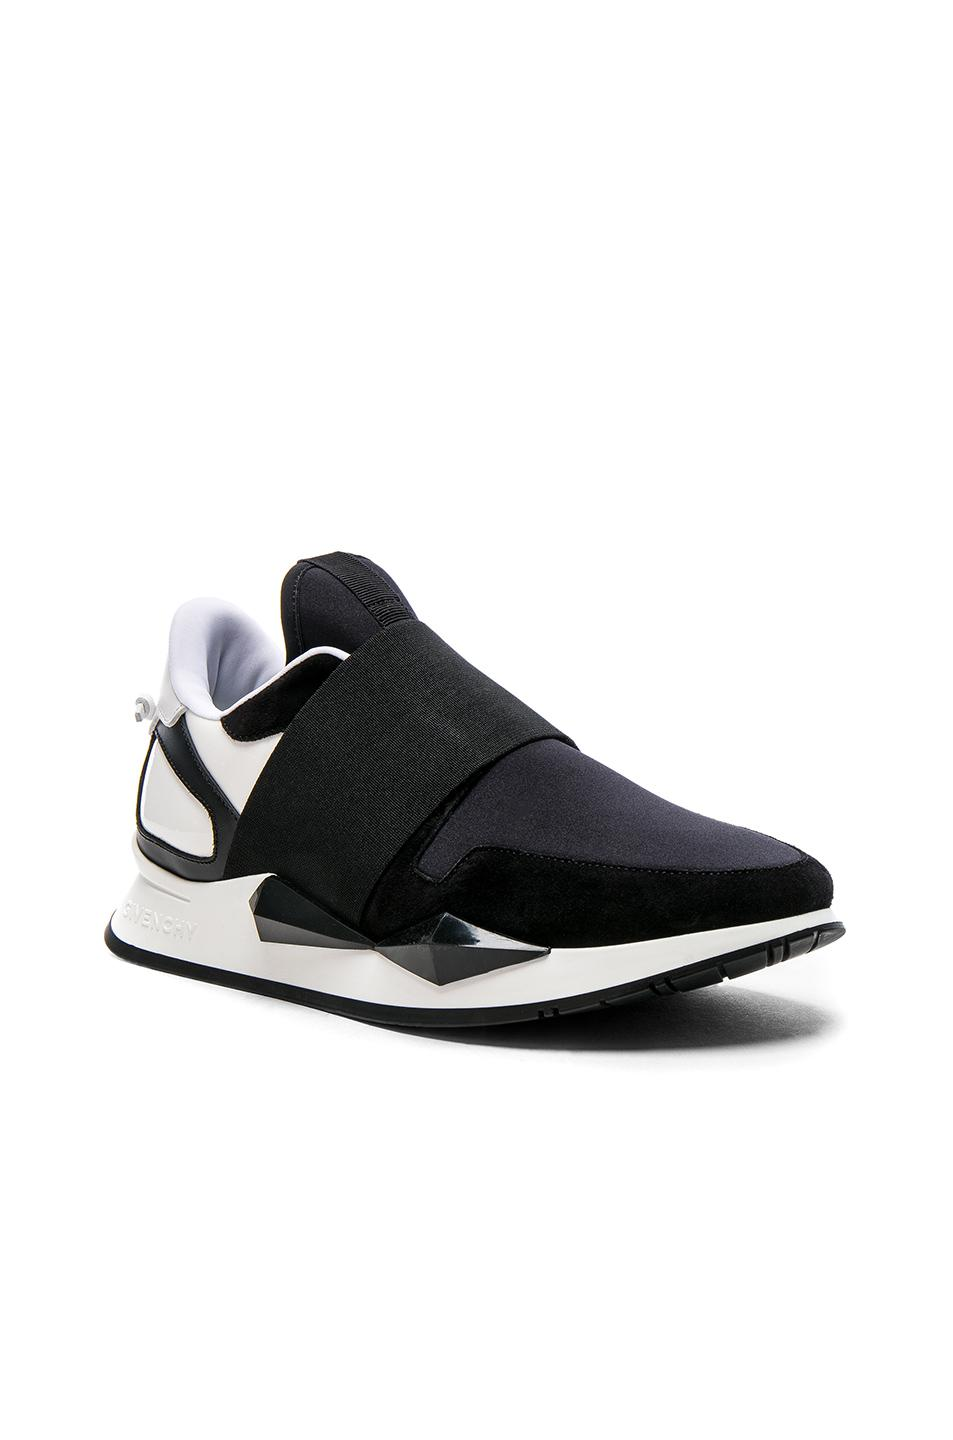 Givenchy Suede & Patent Leather Elastic Strap Sneakers in .